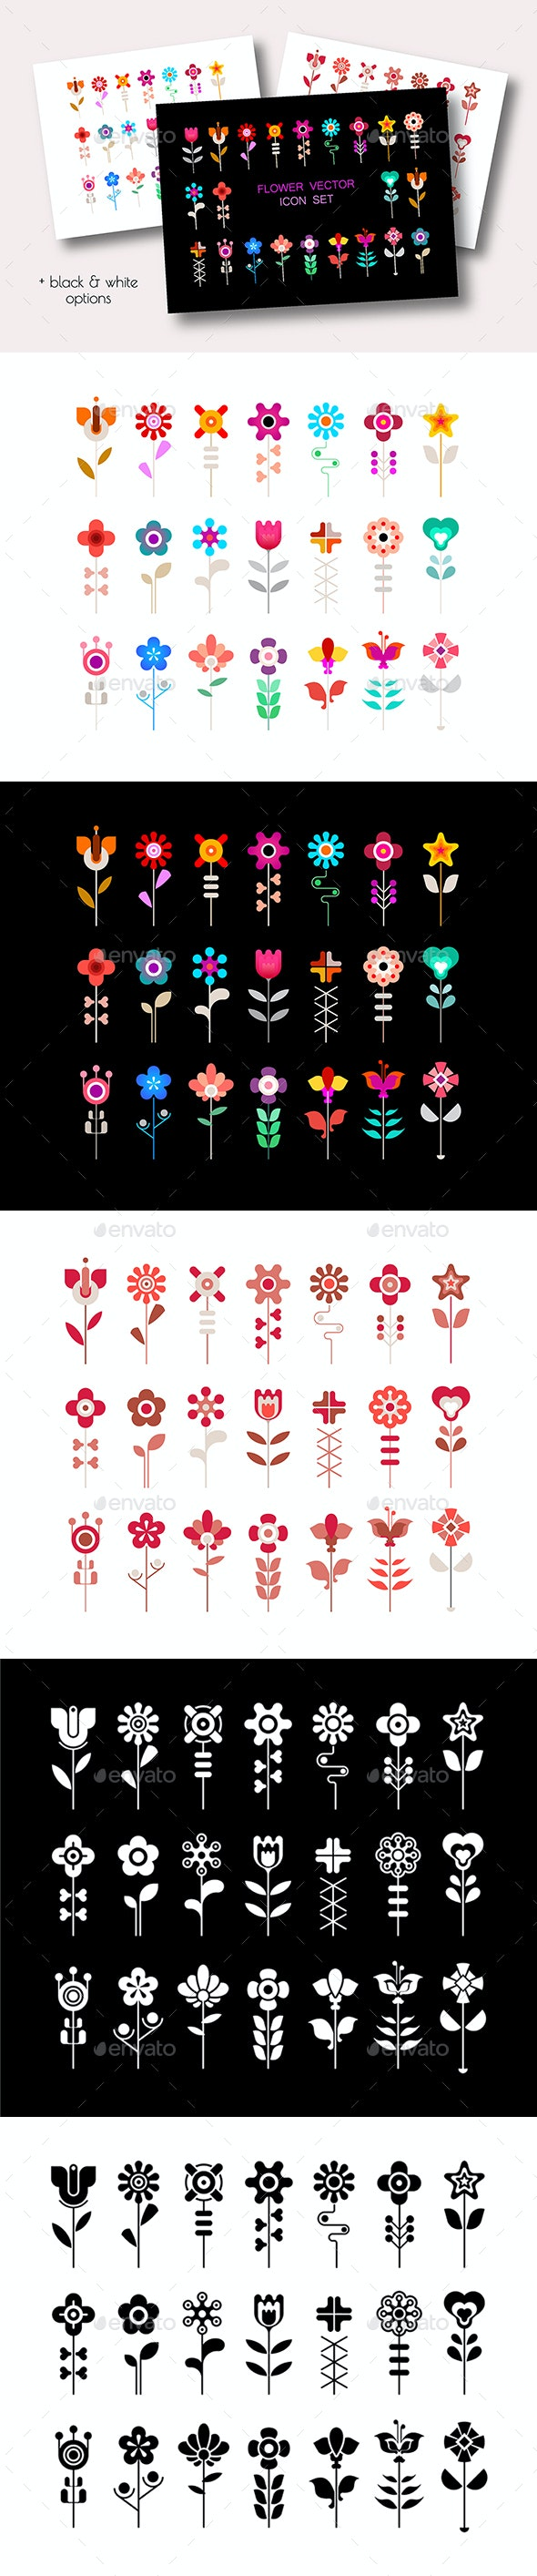 4 Options of a Flower Vector Icon Set - Icons